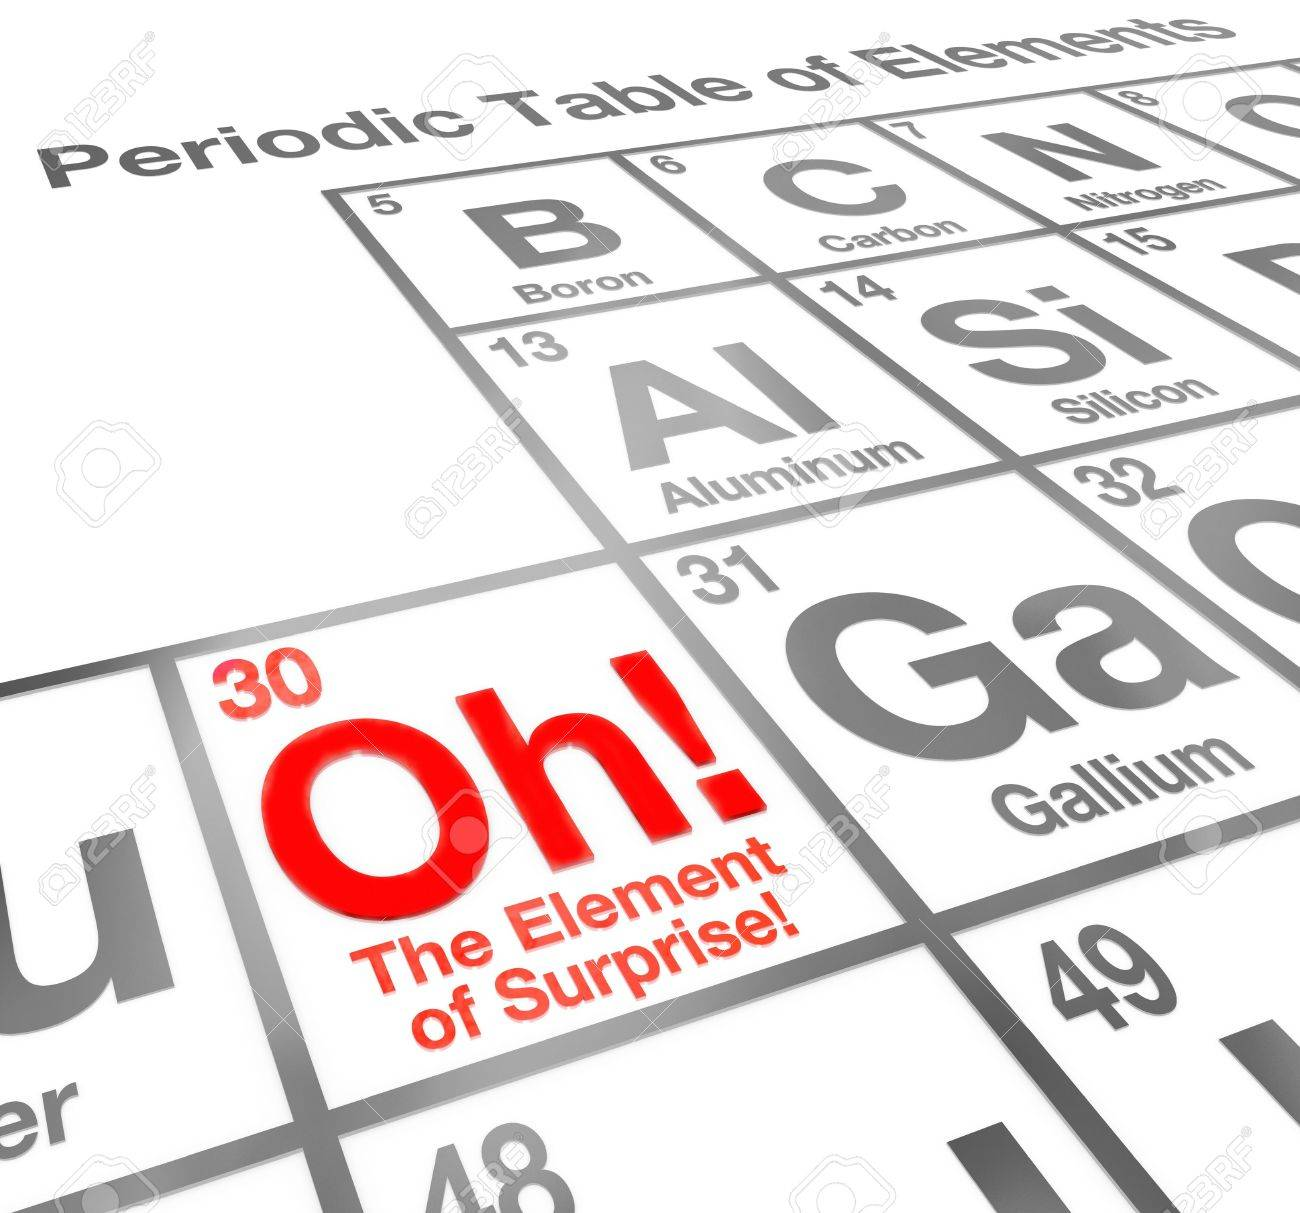 Is aluminum on the periodic table images periodic table images what is the symbol for aluminum on the periodic table image aluminum on the periodic table gamestrikefo Image collections